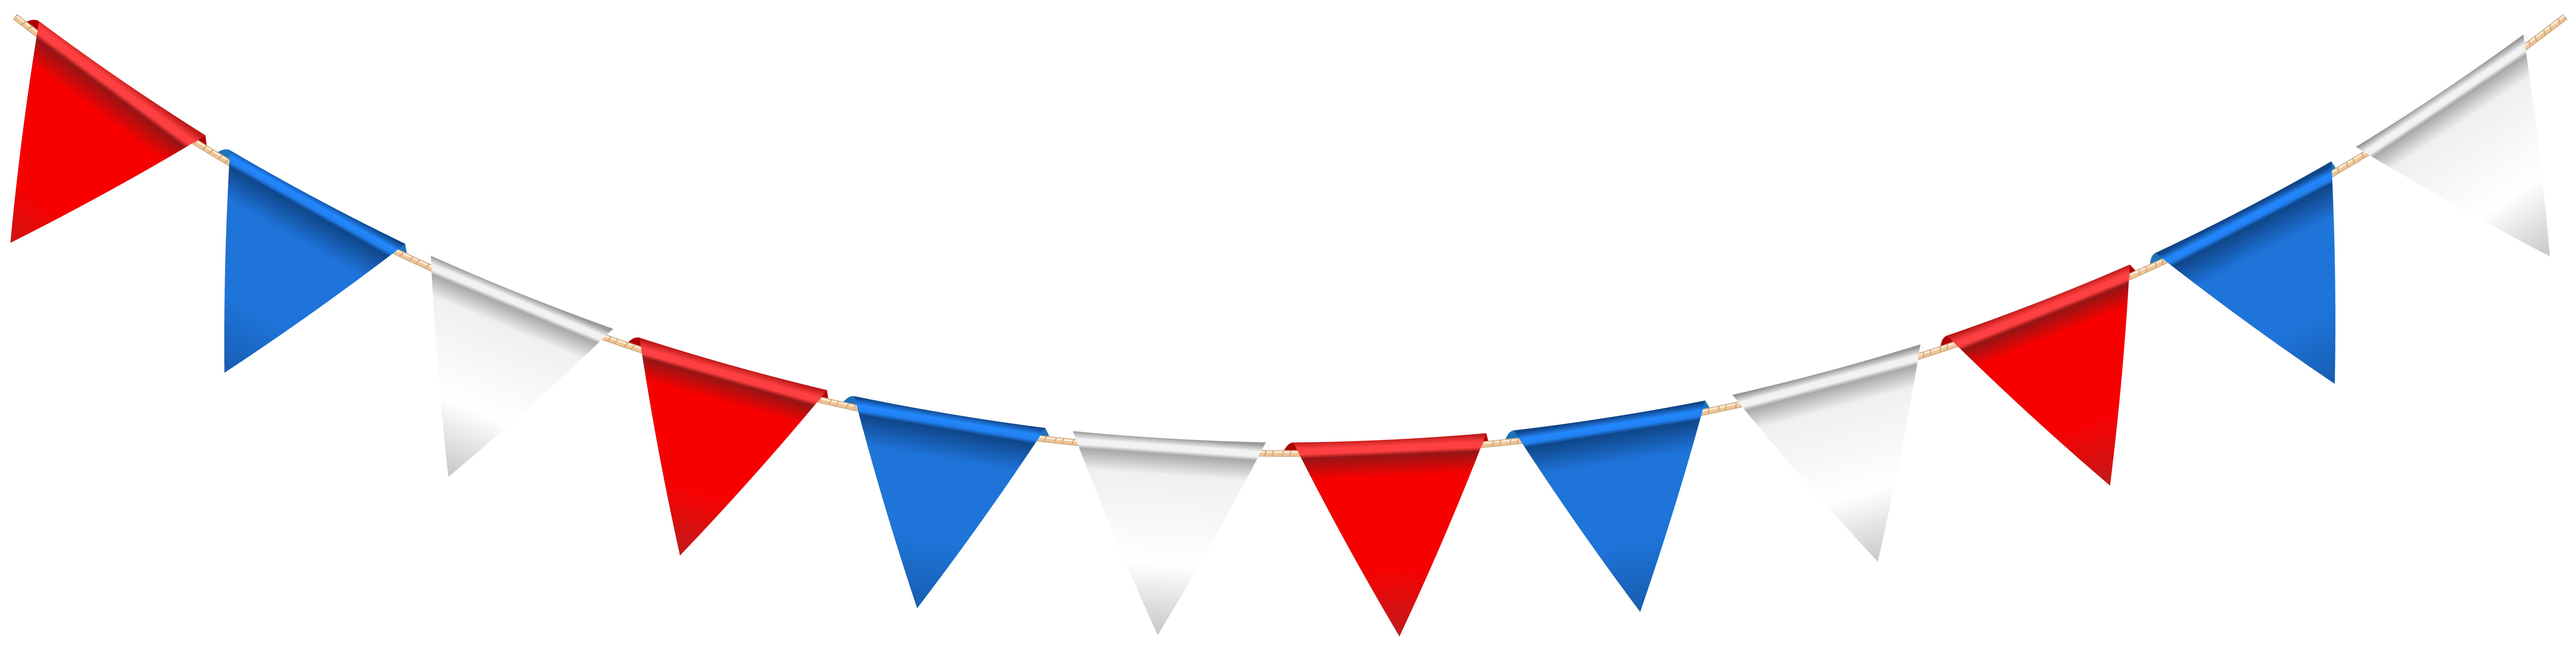 Streamers clipart 4th july. Usa streamer png clip